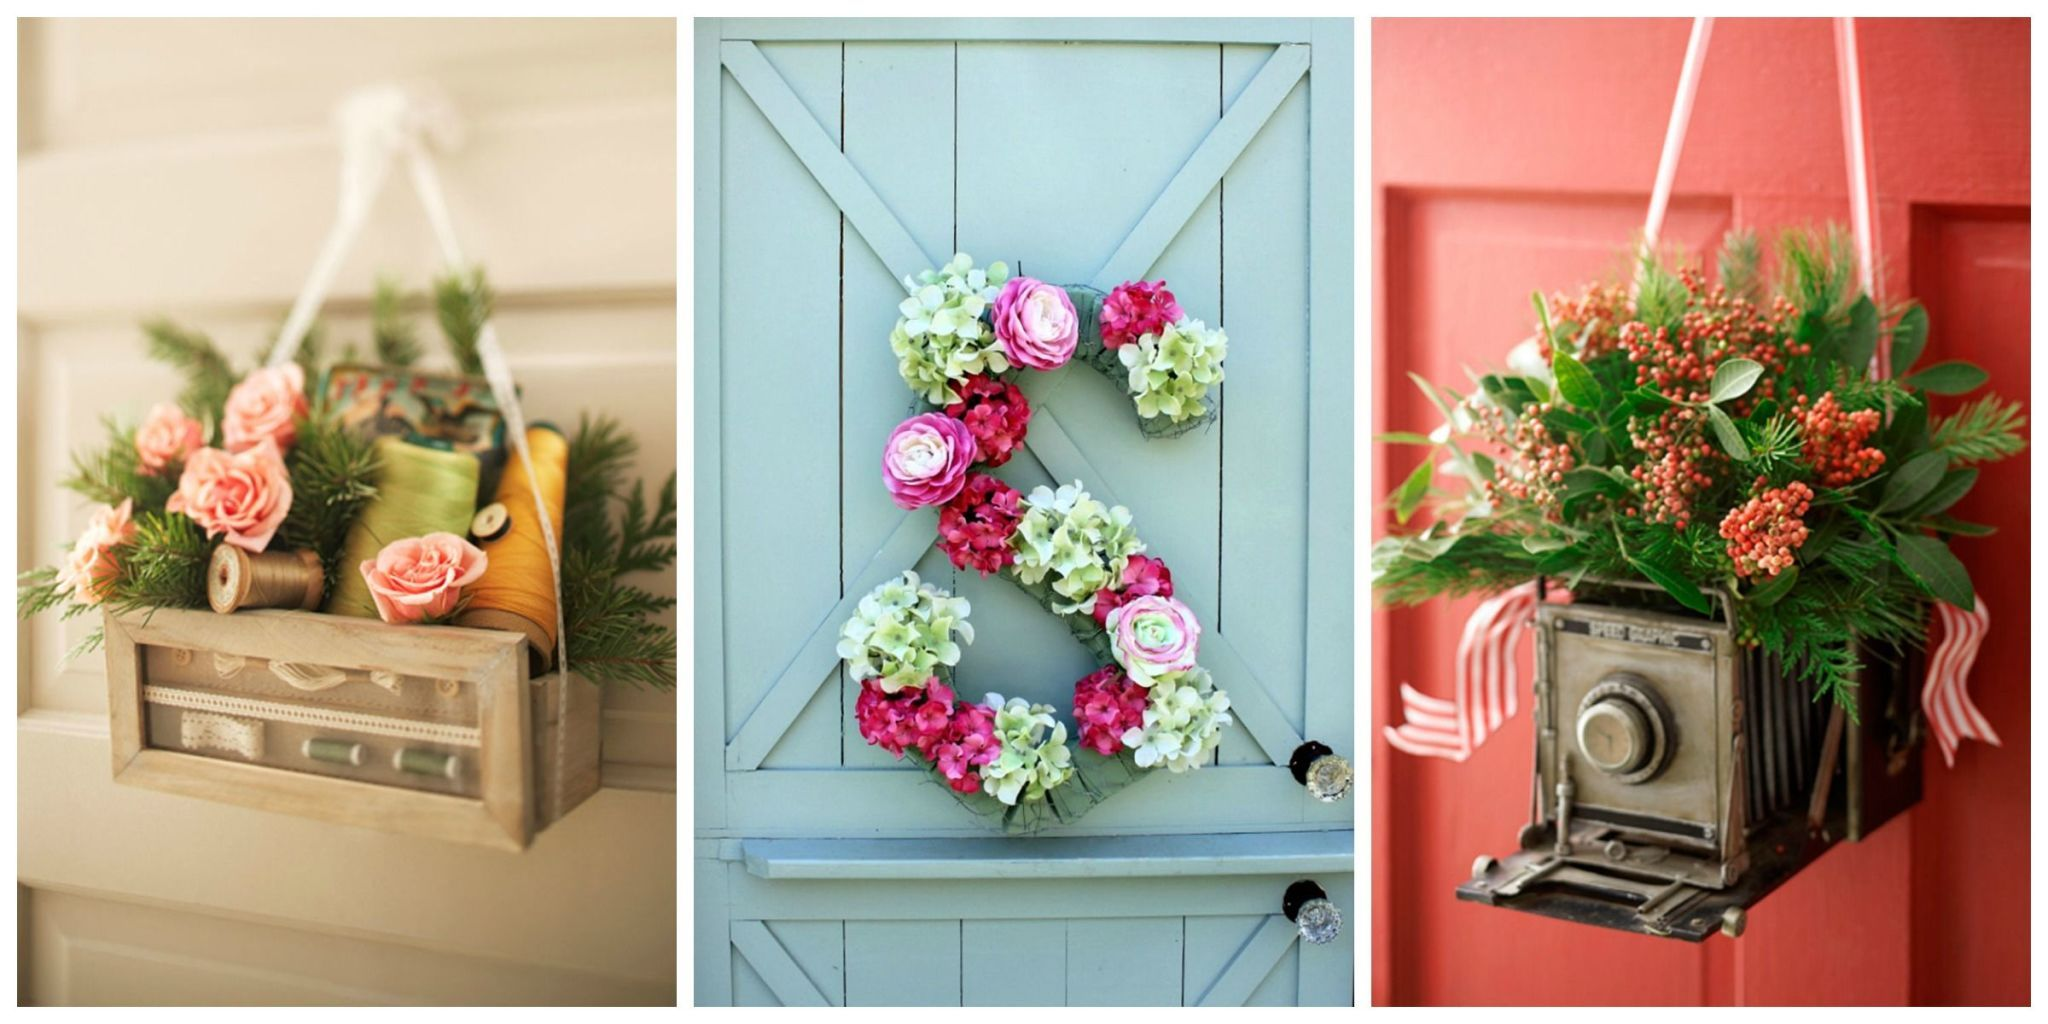 Give your favorite wreath a time out and opt for one of these creative ideas instead. : door decorating ideas - www.pureclipart.com